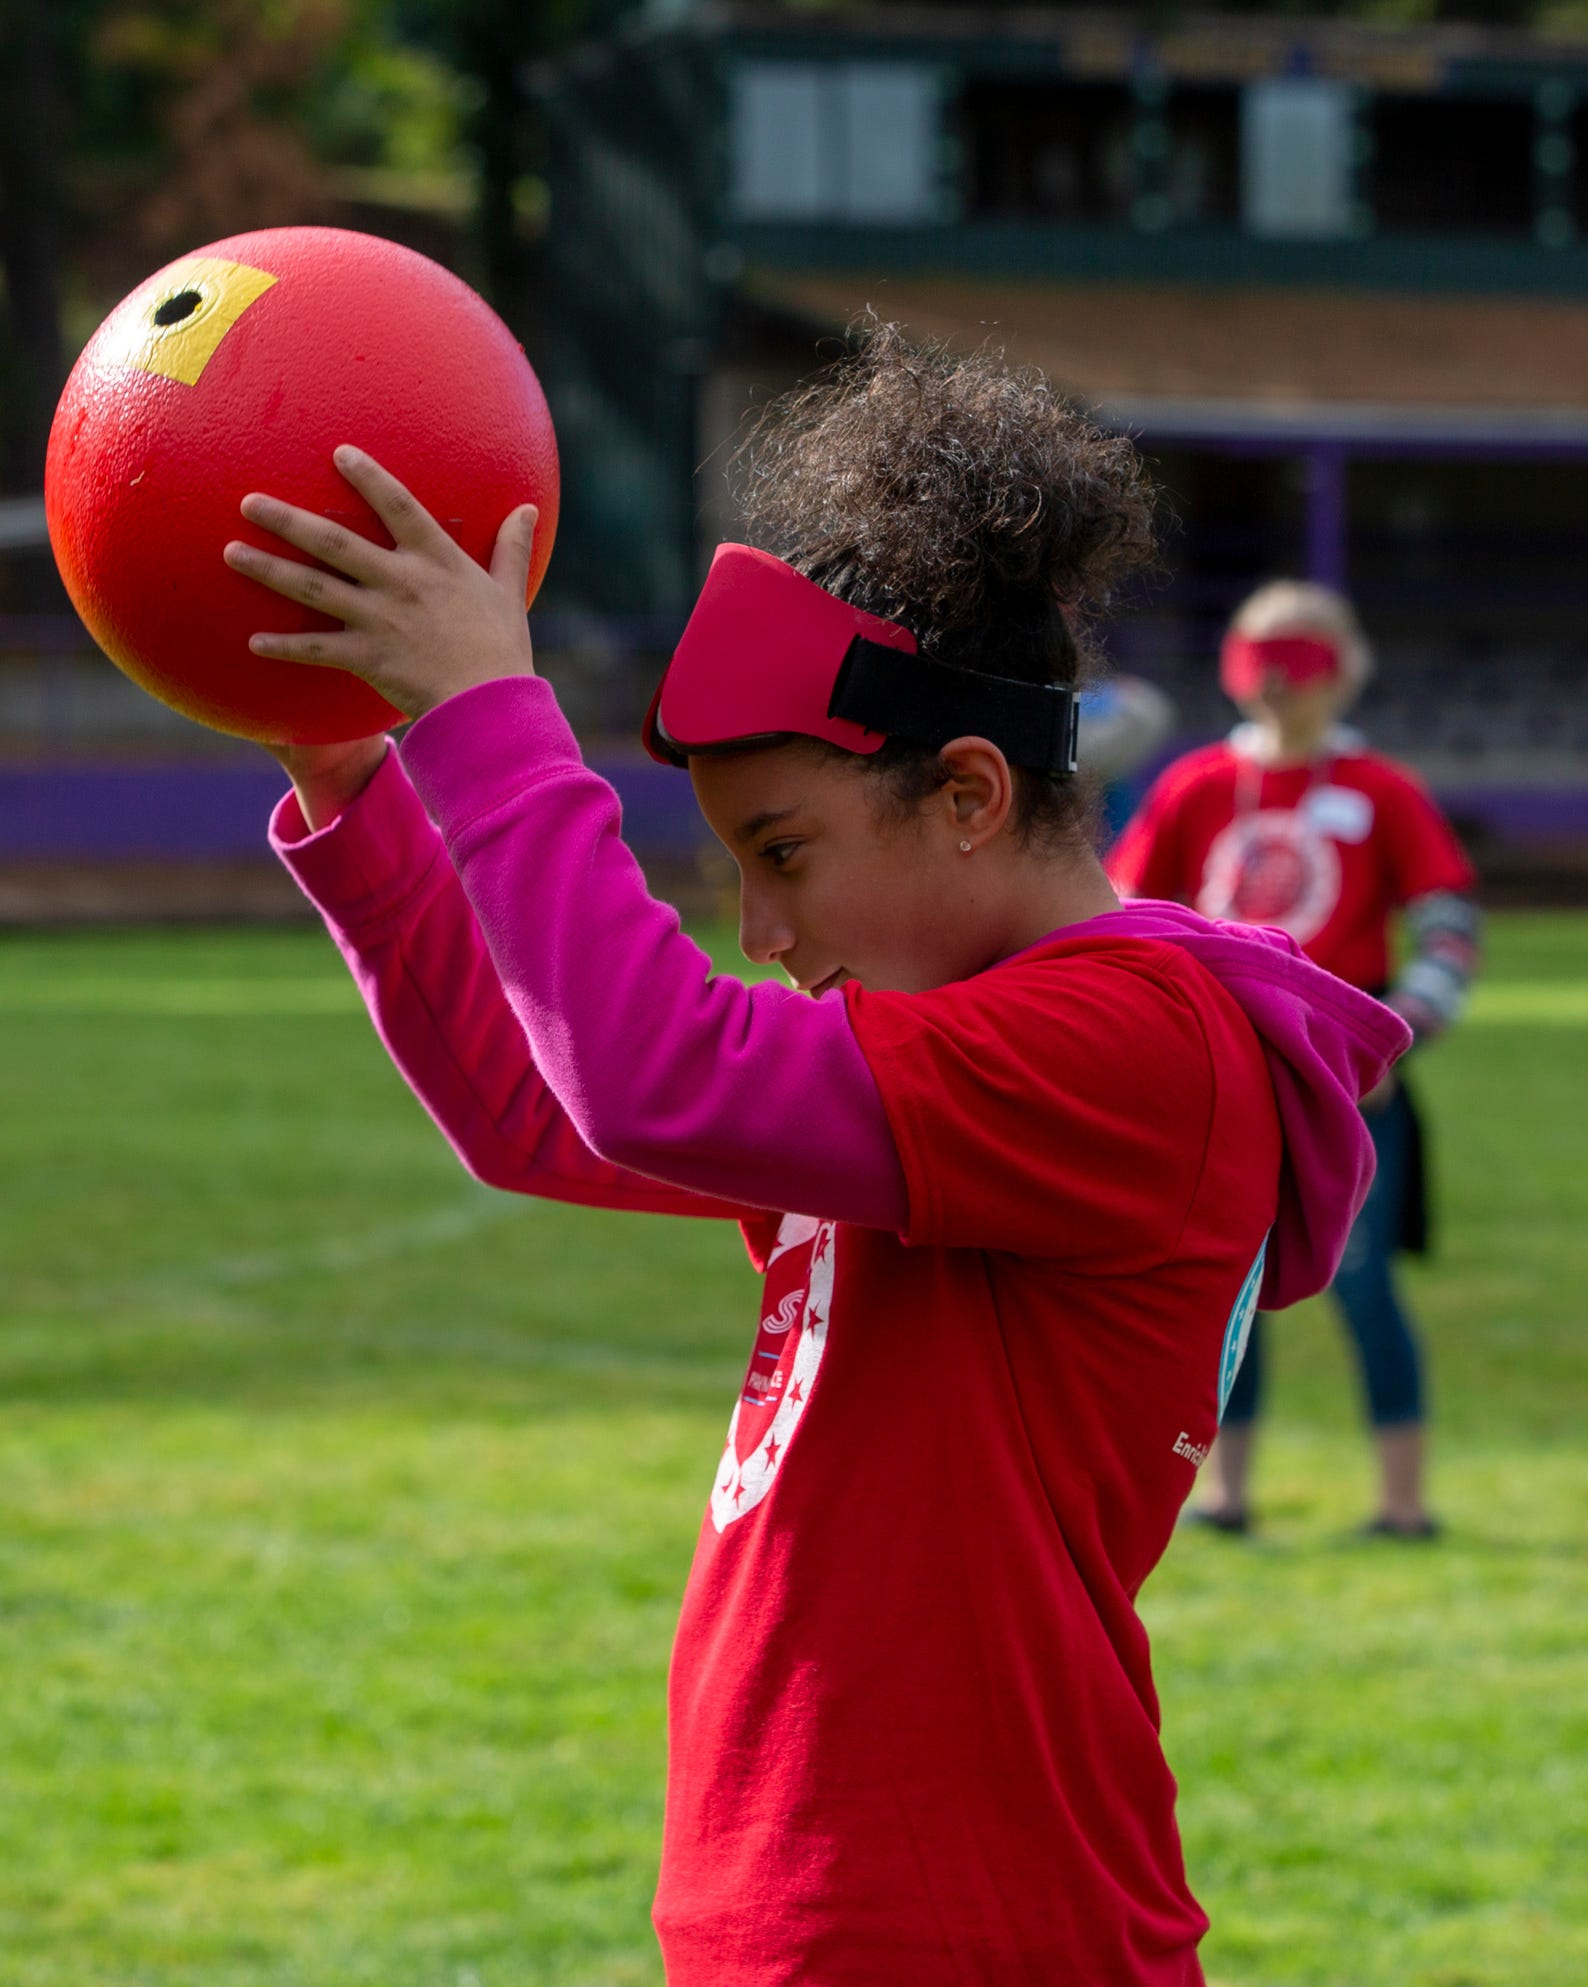 "Erika Corona-Gonazlez, a 6th grader, catches the ball during beep kickball at the Oregon School for the Deaf in Salem, Oct. 4, 2019. NWABA, the Northwest Association for Blind Athletes, hosted a ""Paralympic experience"" for students with visual impairments in the state. After the Oregon School for the Blind closed in 2009, many visually impaired students and their families lost access to state-funded resources, like sports programs. The BVIS (Blind Visually Impaired Student) Fund gives programs like NWABA funds to enhance the lives of low vision/blind children across the state."